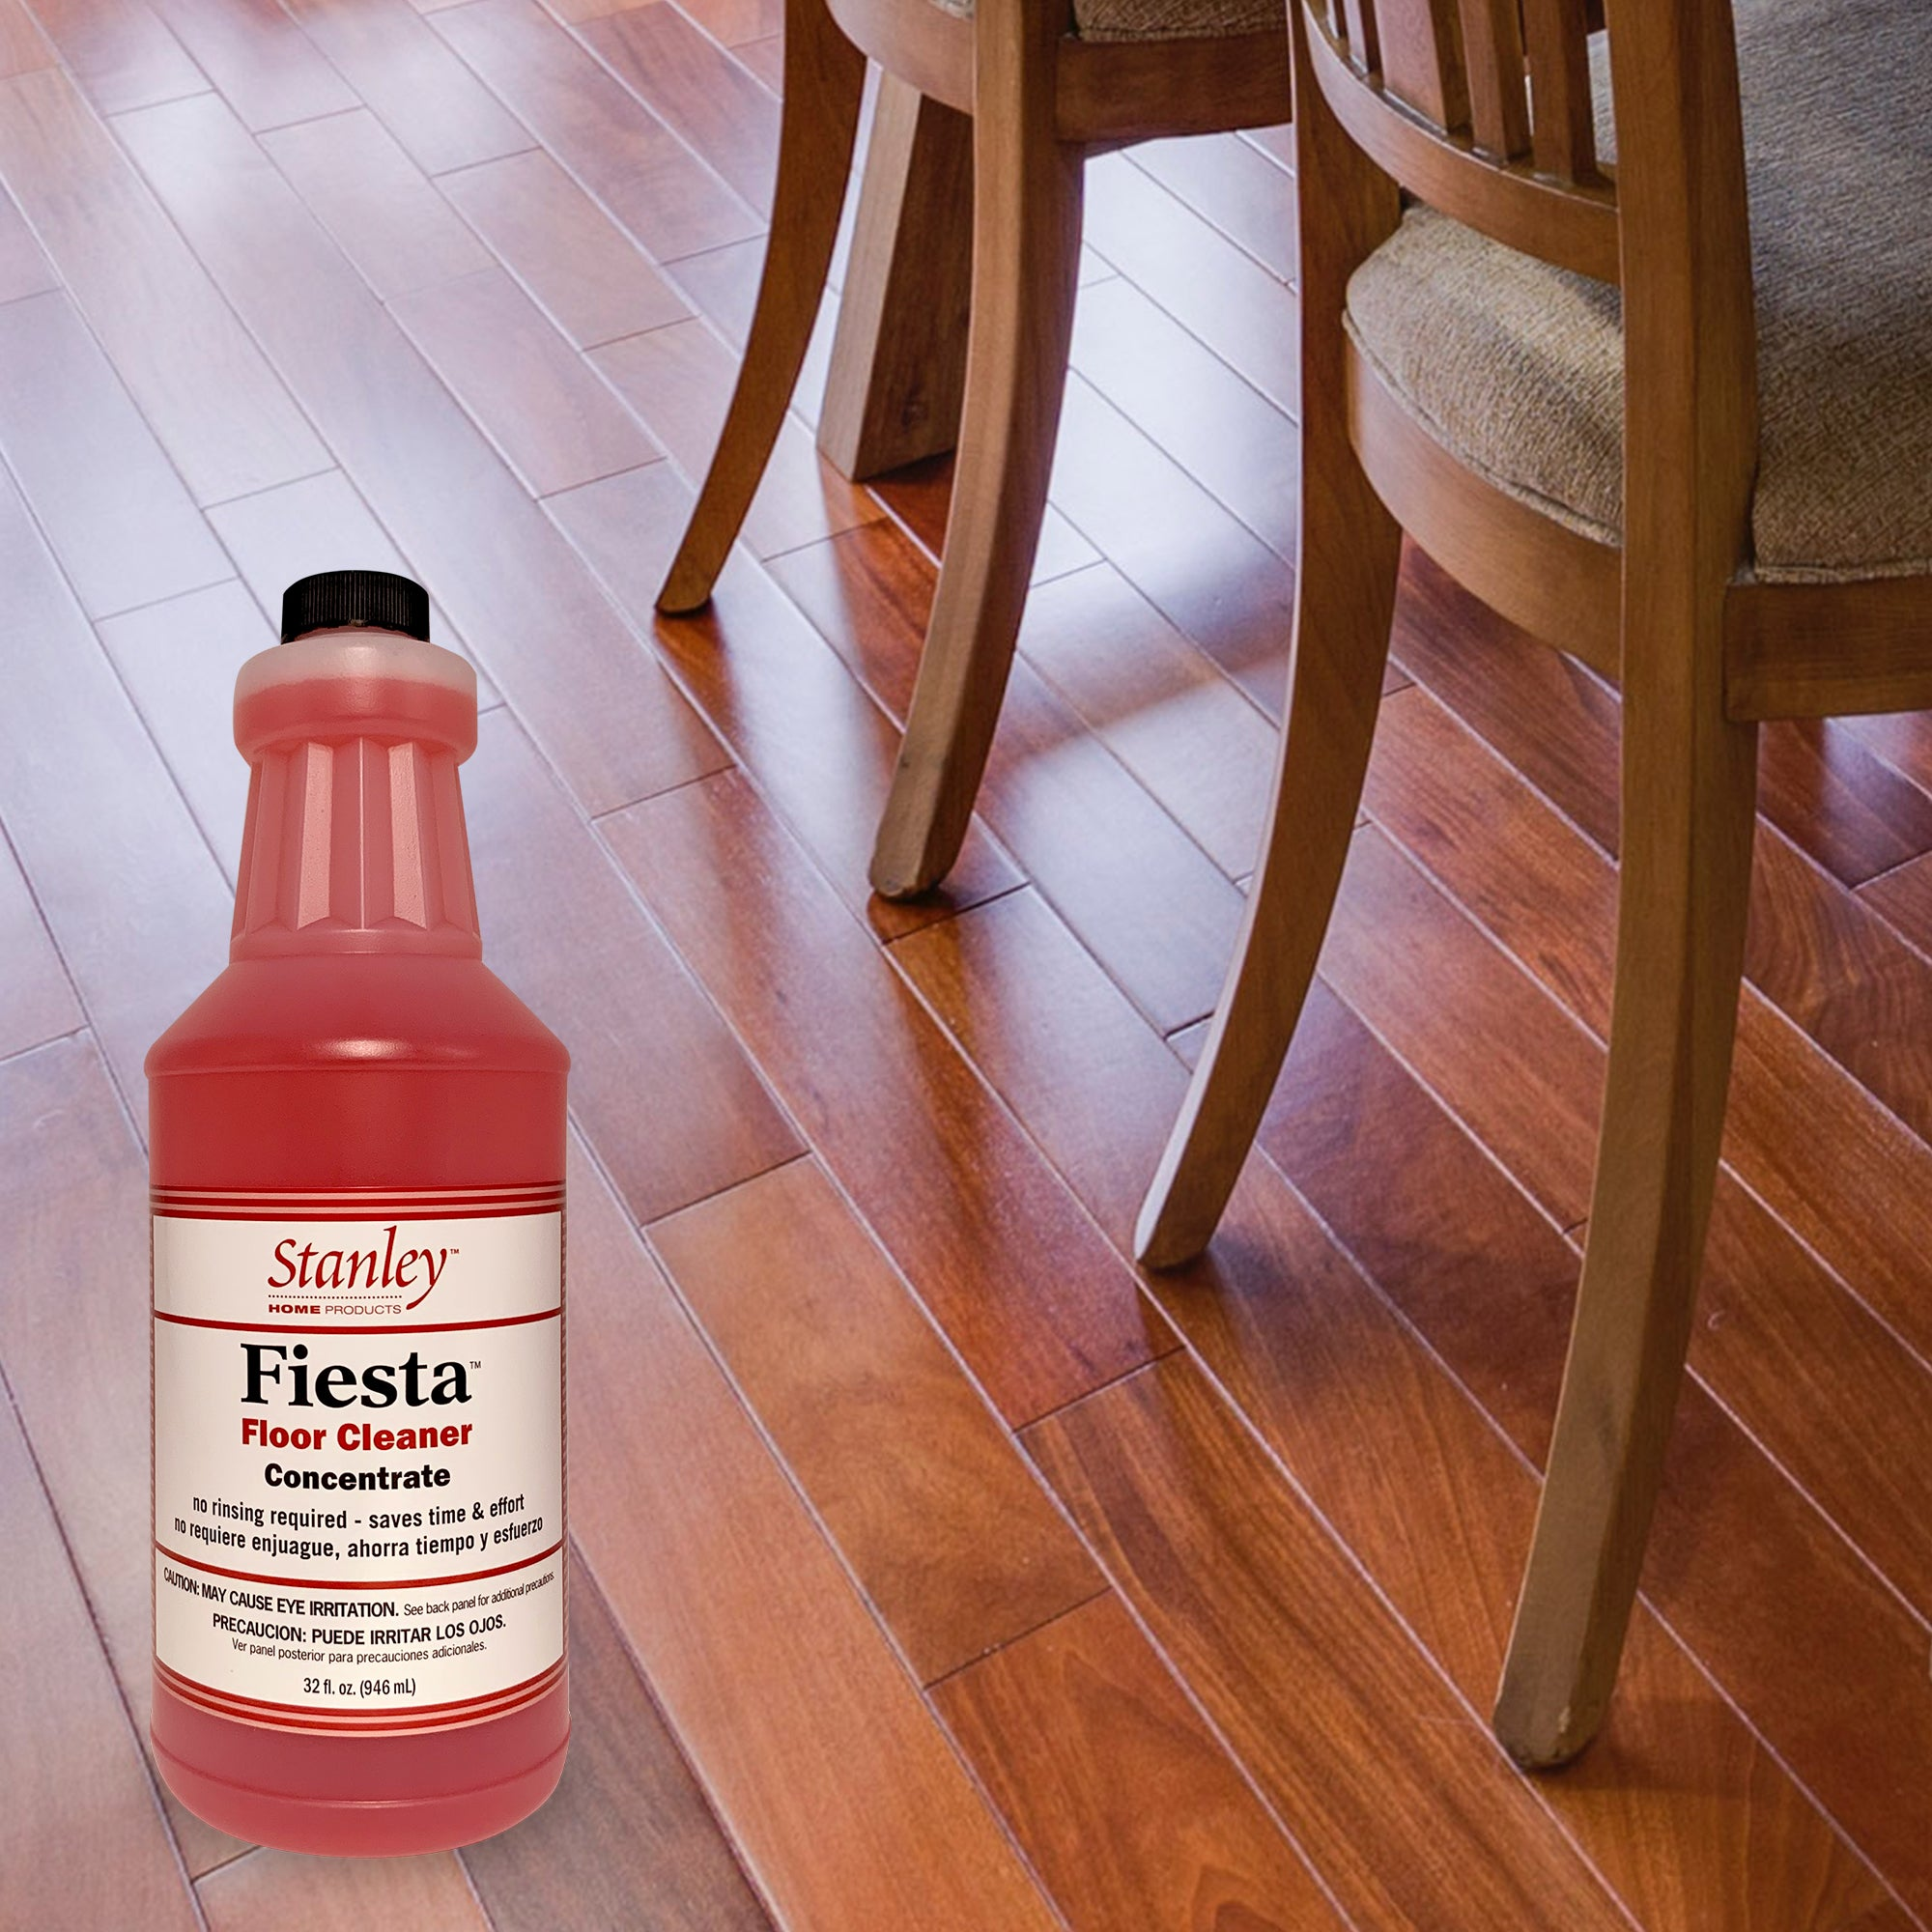 Fiesta Floor Cleaner, For Wood Tile & Hard Floors, Concentrate, Fresh Citrus 32 oz